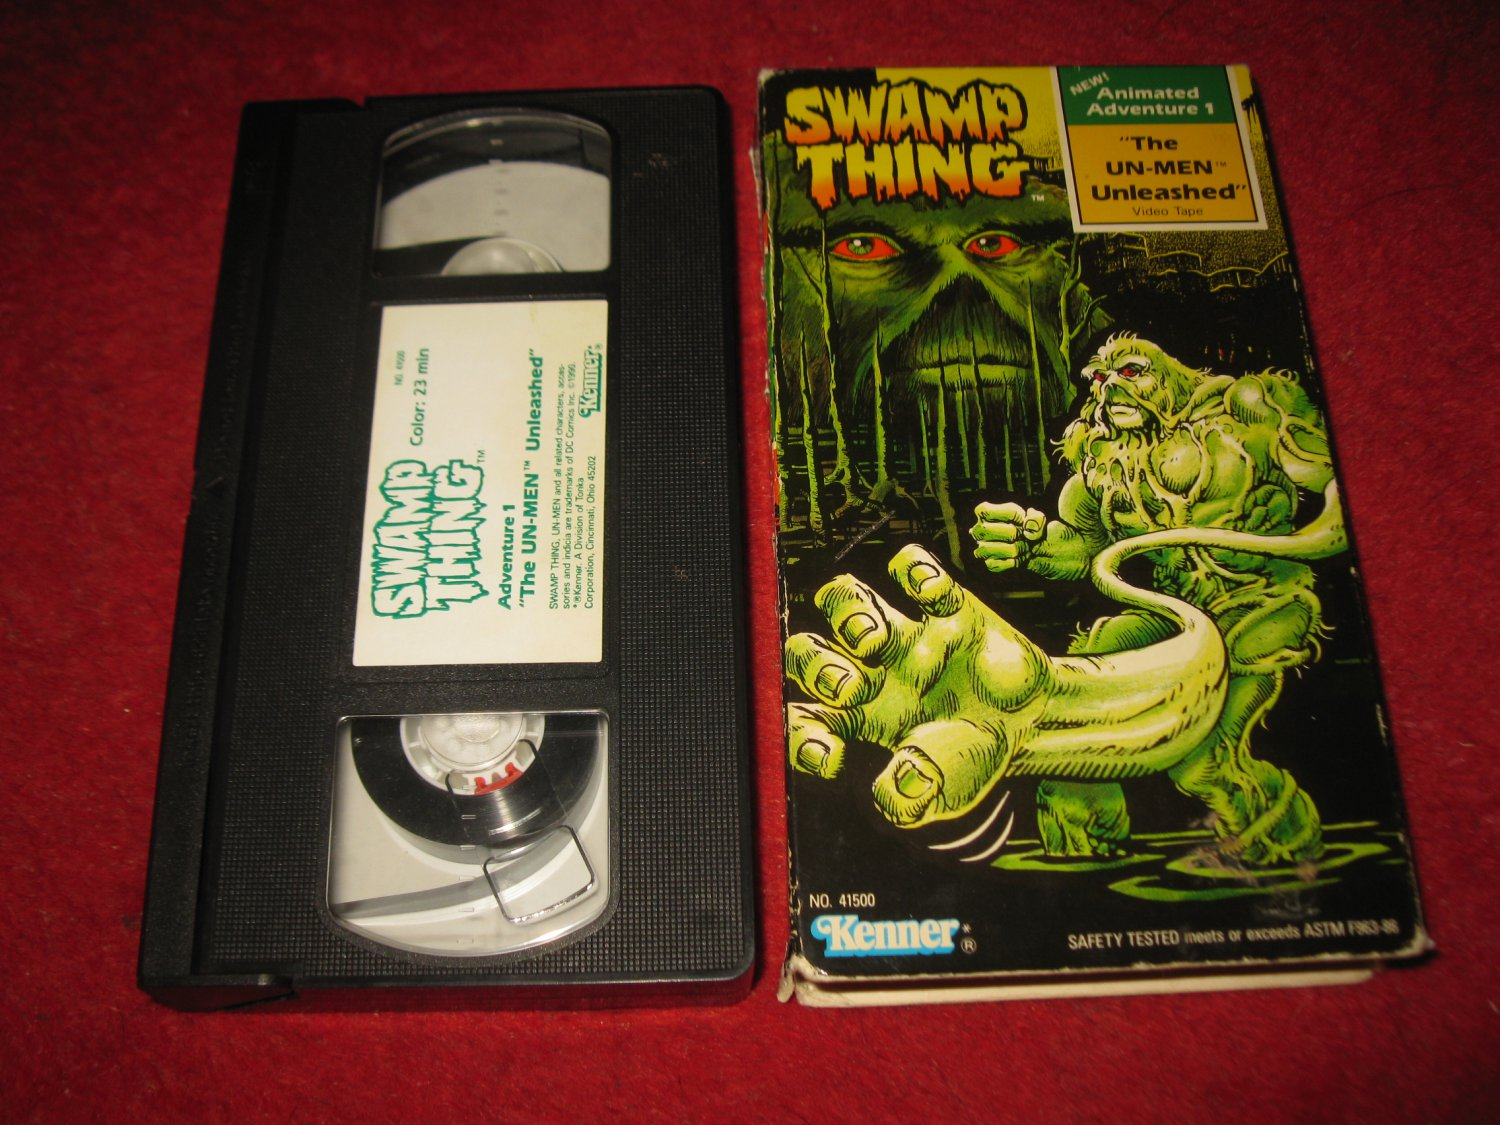 1990 Swamp Thing VHS Movie : The Un-Men Unleashed